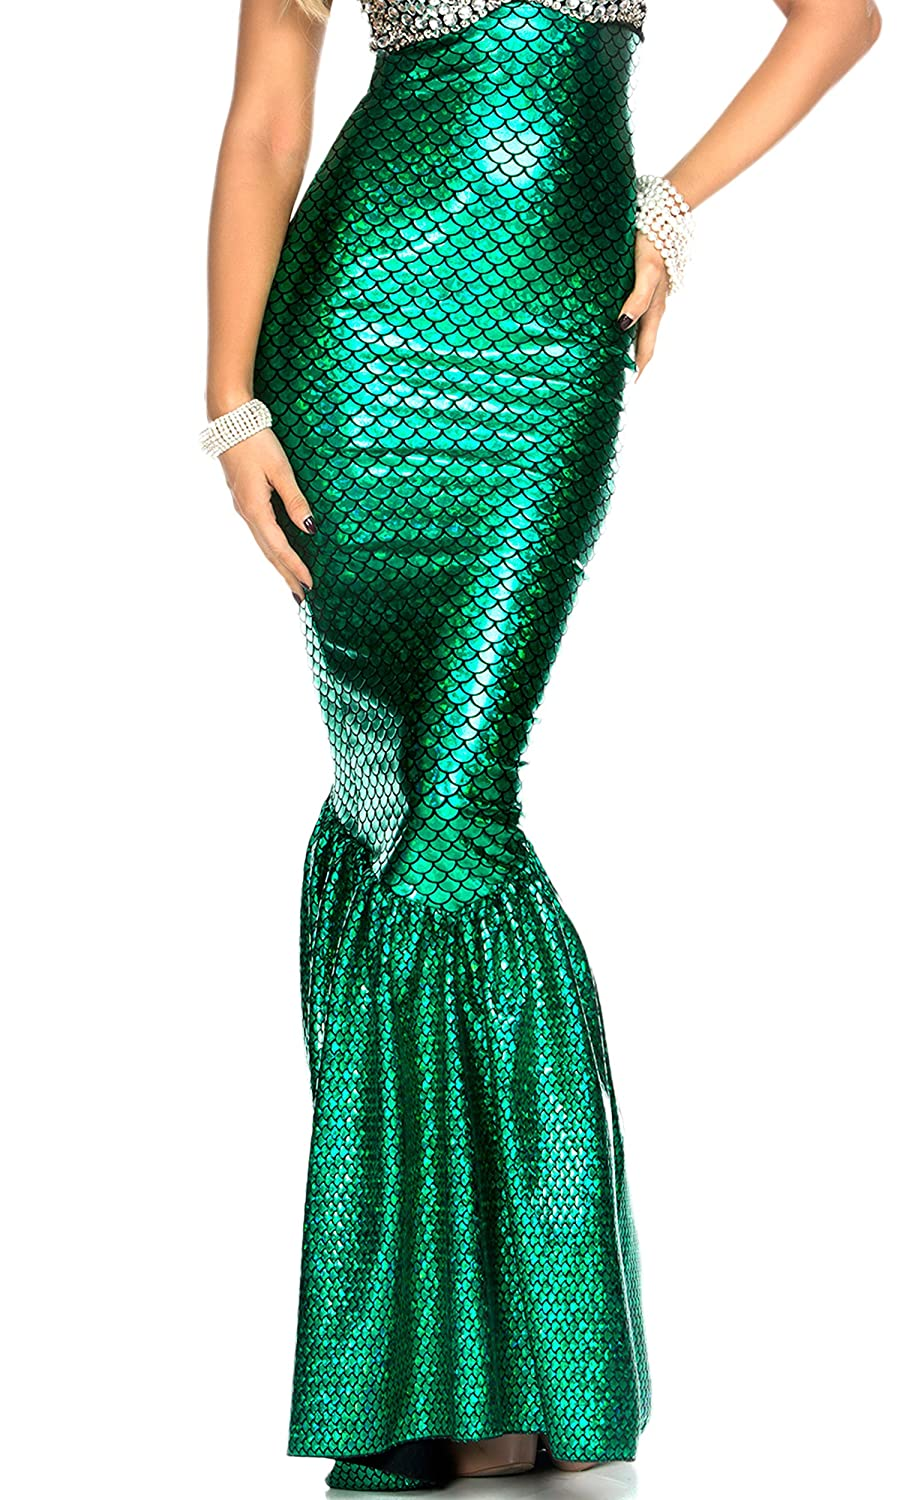 Women's High-Waisted Hologram Finish Green Mermaid Skirt - DeluxeAdultCostumes.com